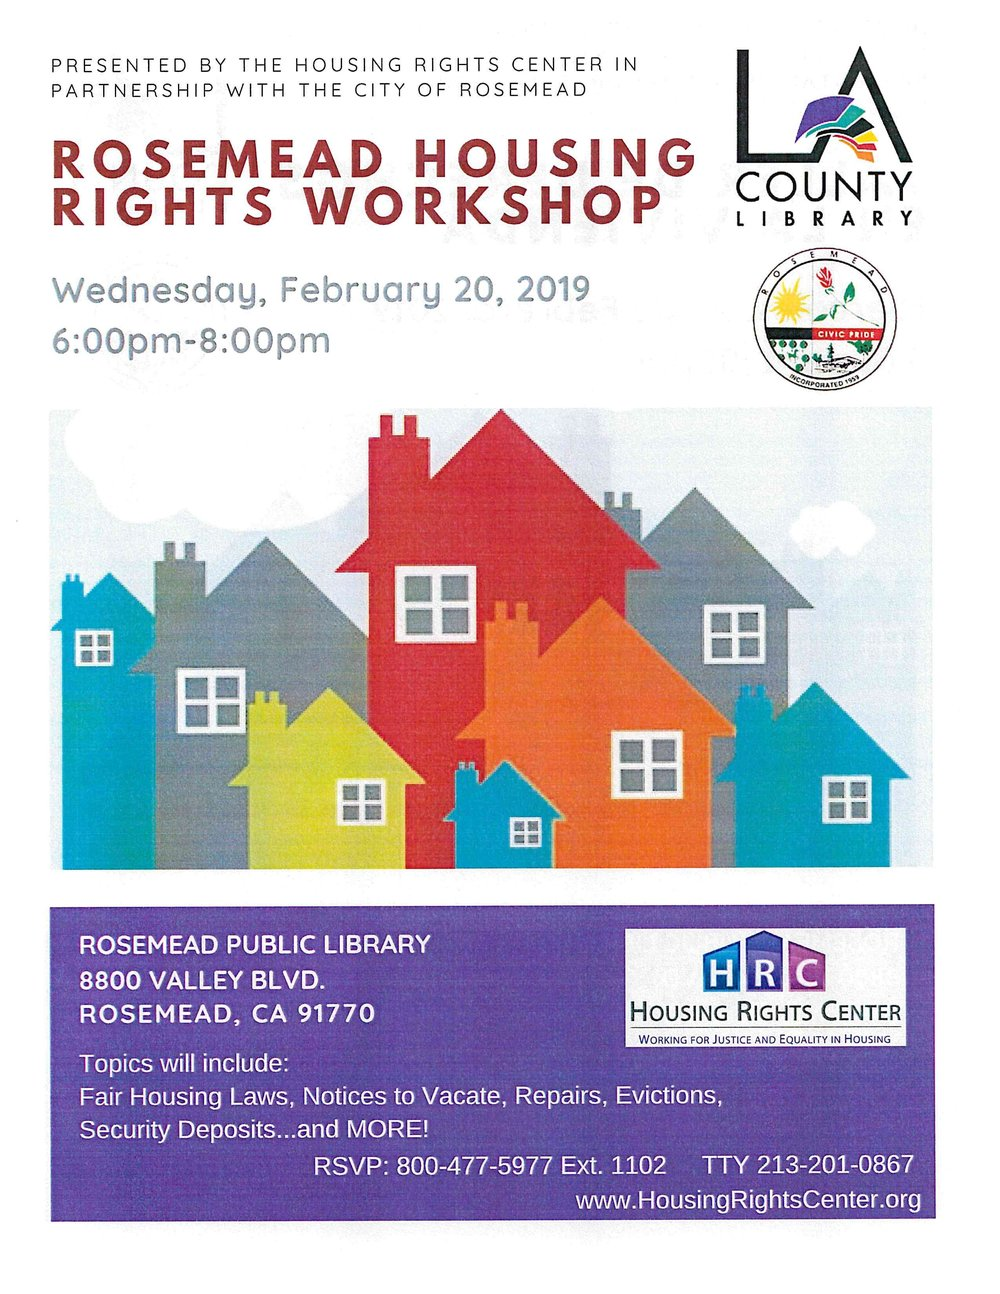 rosemead housing rights workshop - February 20th, 2019